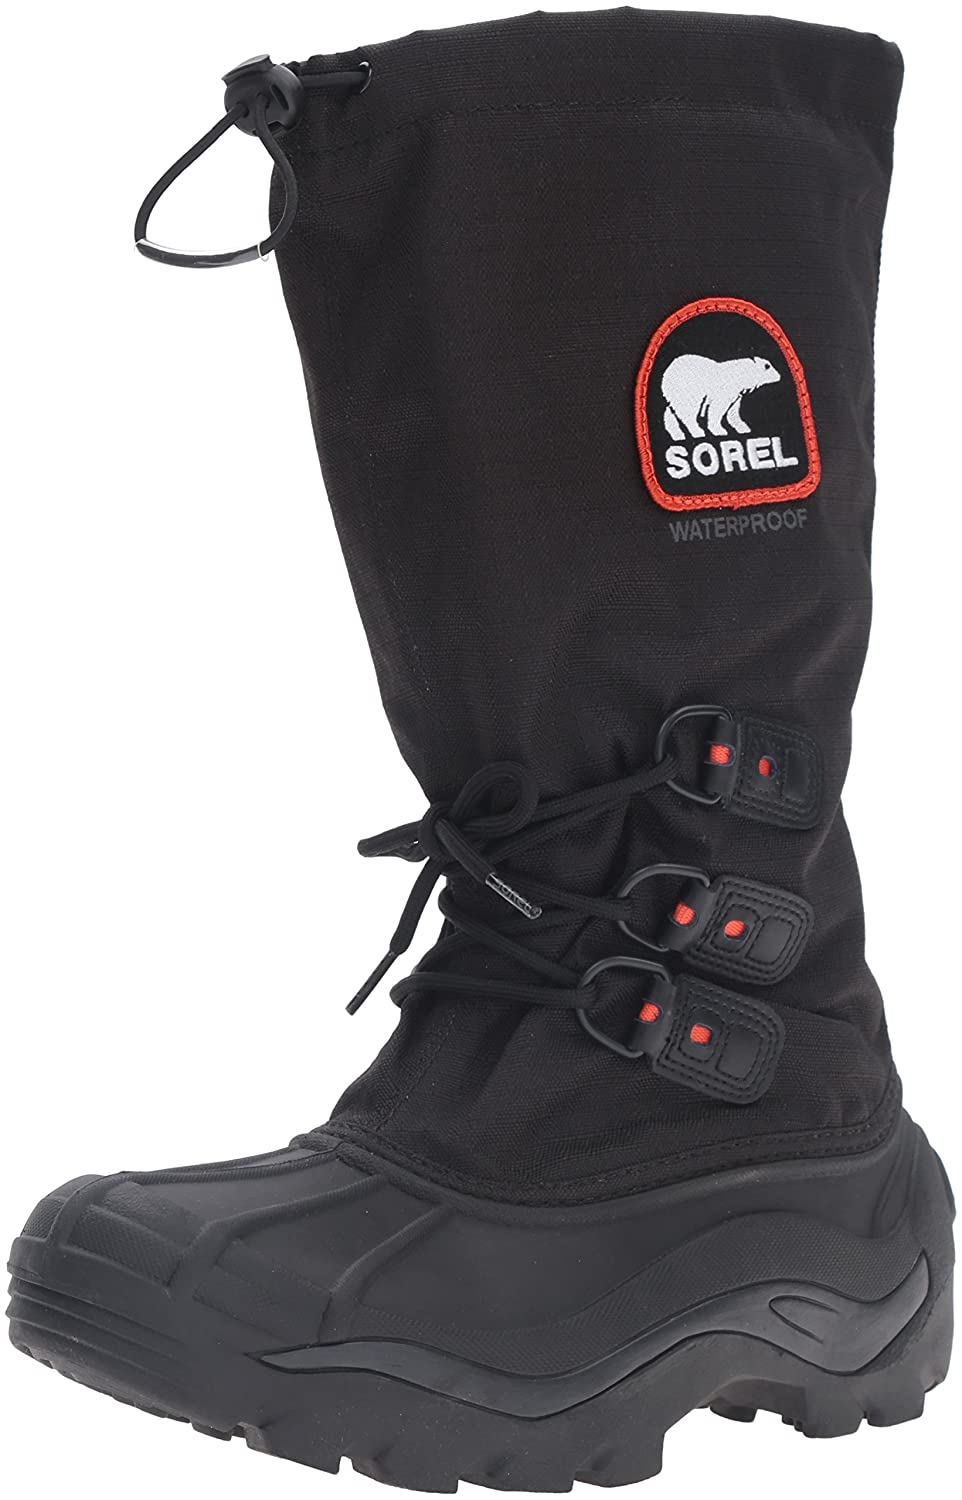 Sorel Men's Blizzard Xt-m Snow Boot